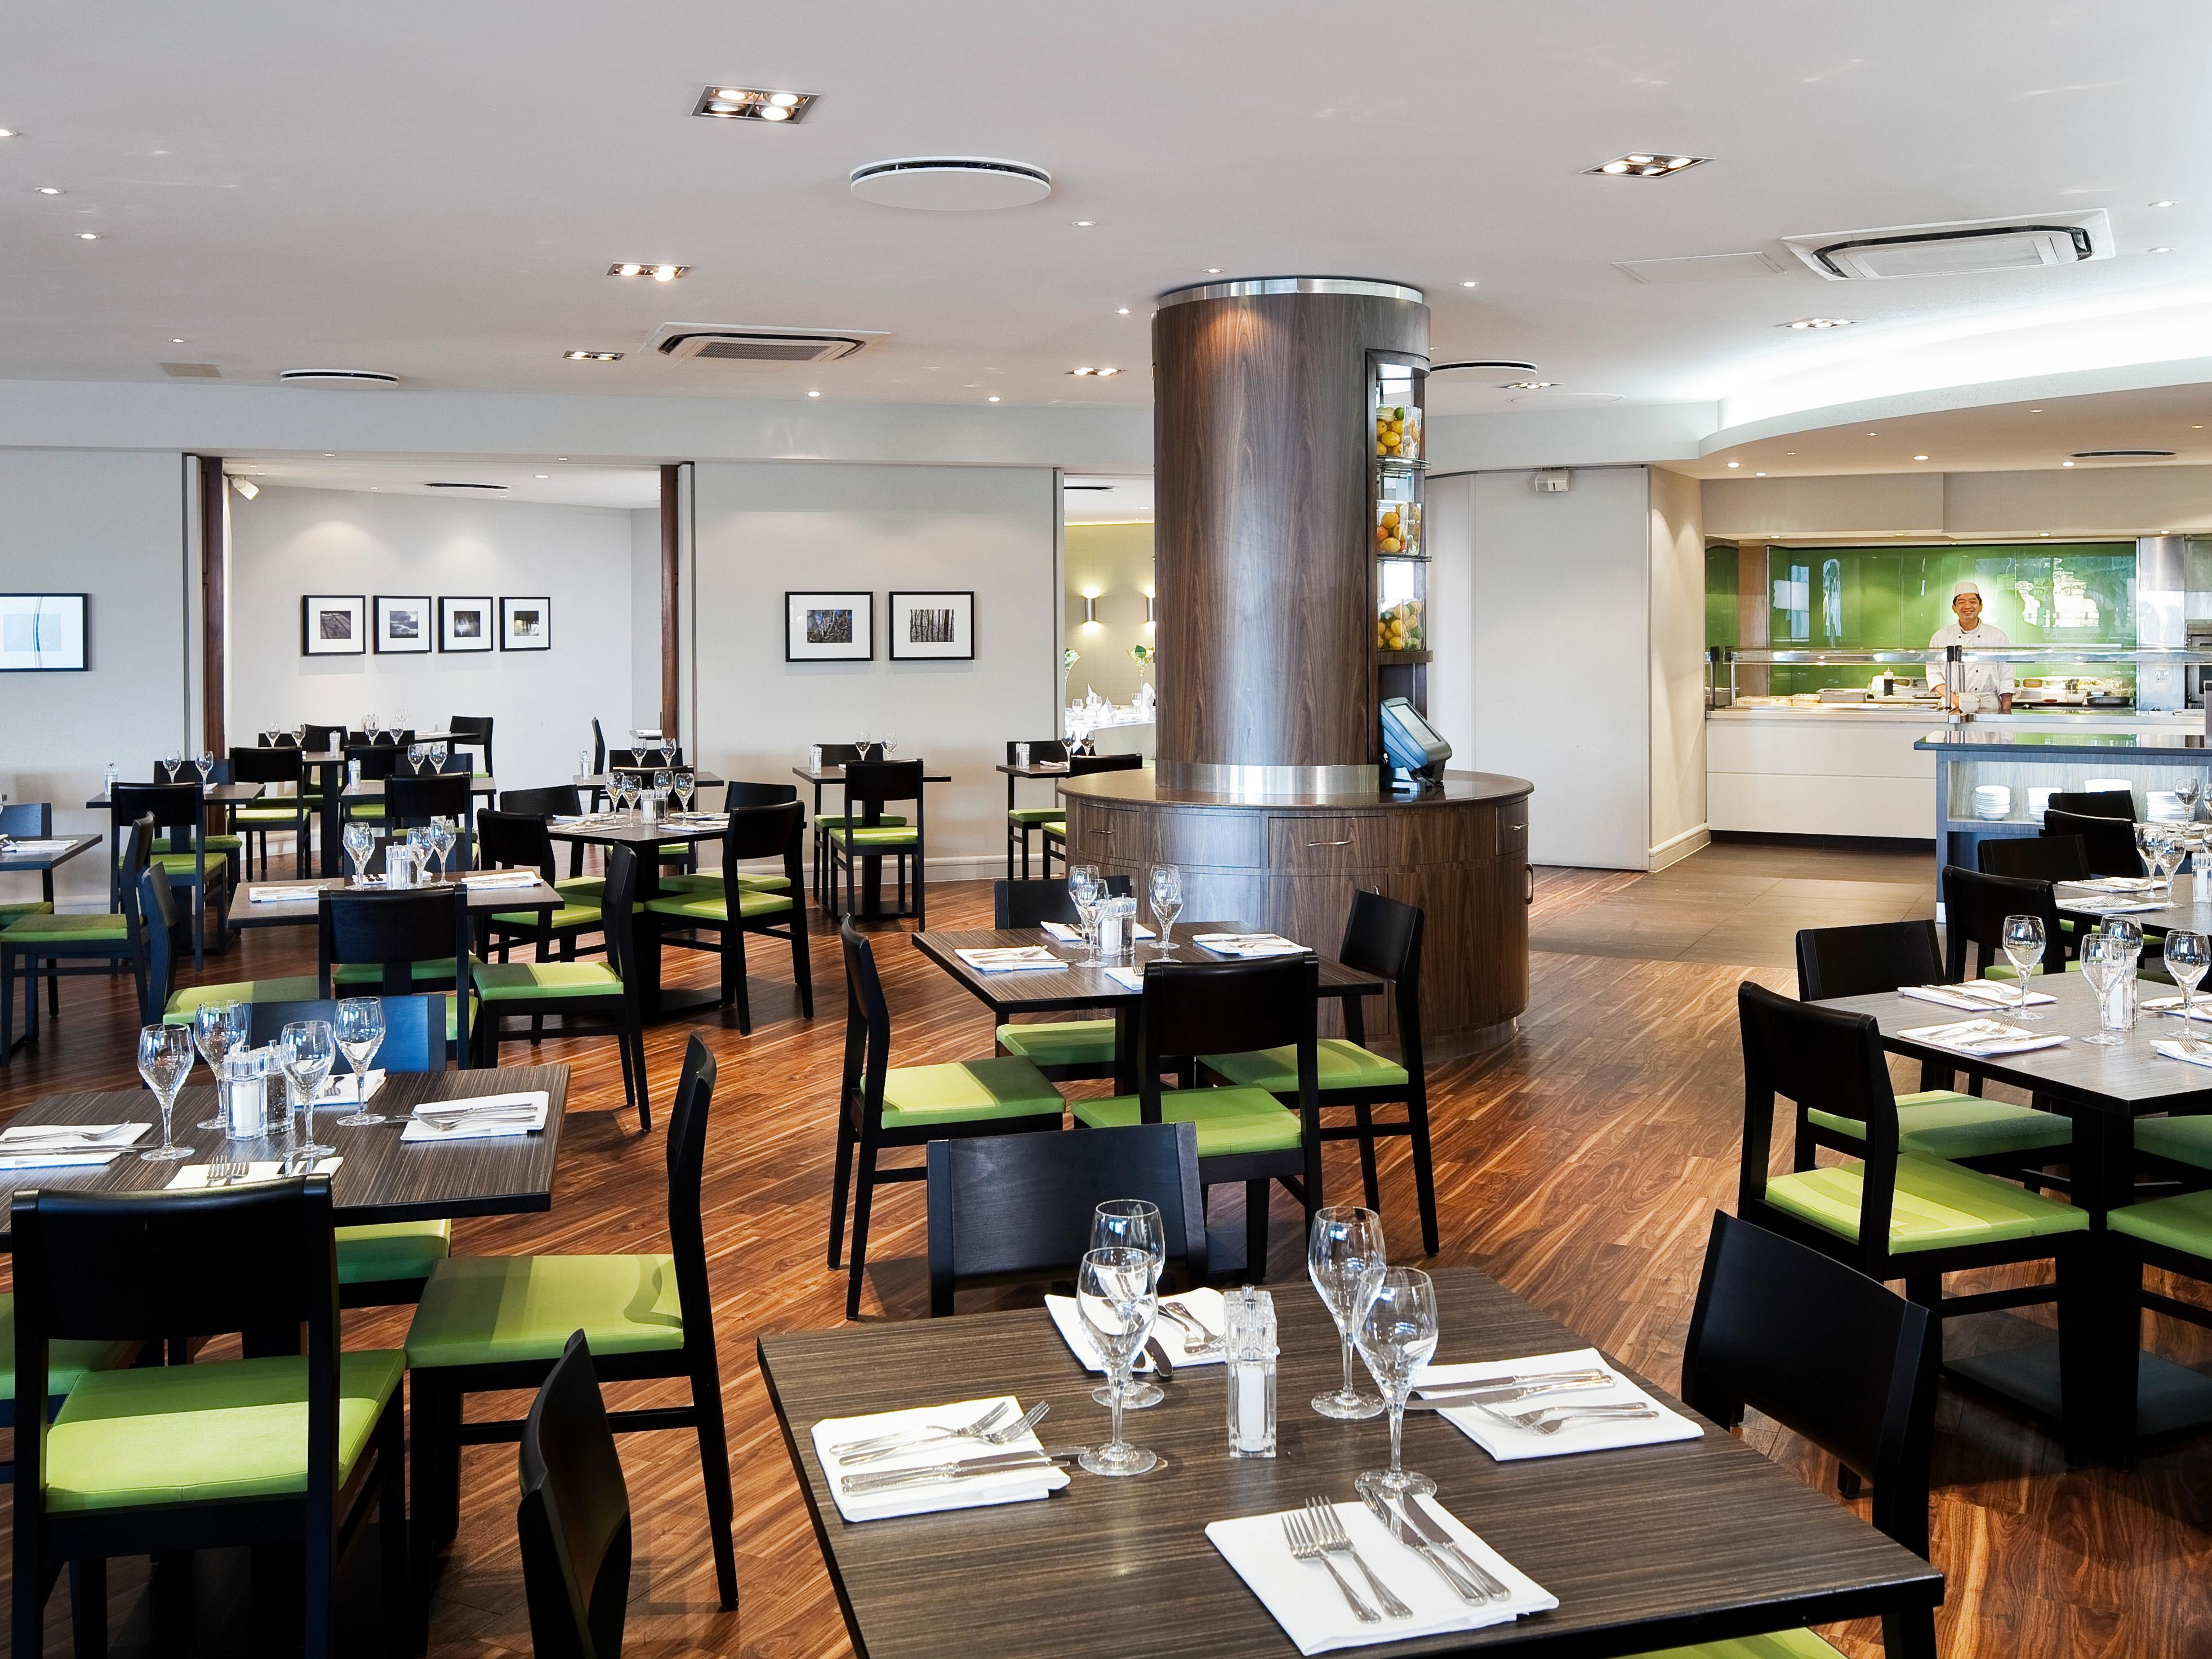 LONNO-Holiday Inn London Heathrow M4 Jct 4-Main Restaurant